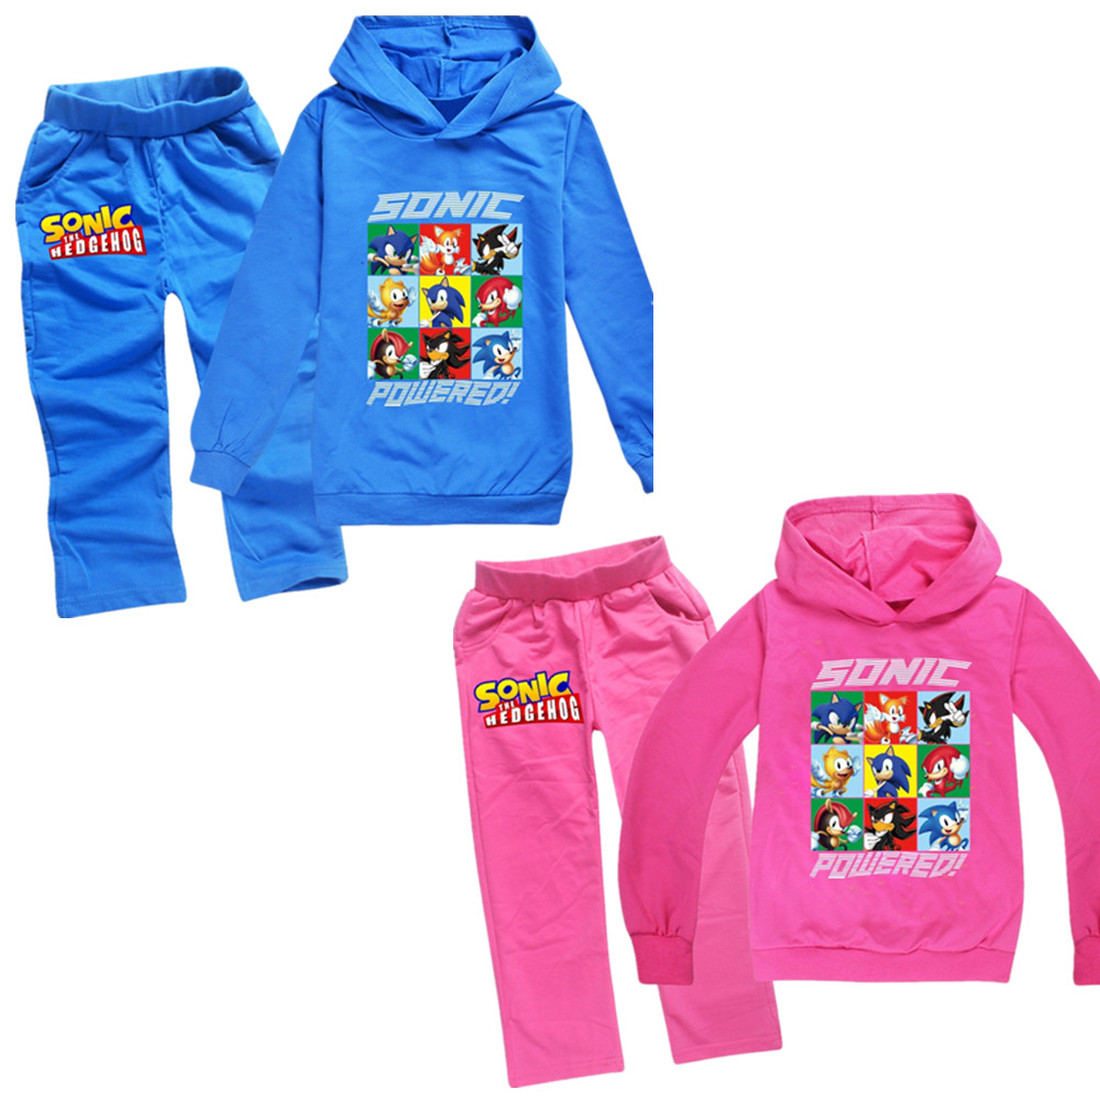 Toddler Girl Clothes Sonic The Hedgehog Fashion Hooded T Shirt Boys Casual Sportswear Cartoon Hoodies Baby Girls Coats Sets 701 Buy At The Price Of 5 38 In Aliexpress Com Imall Com